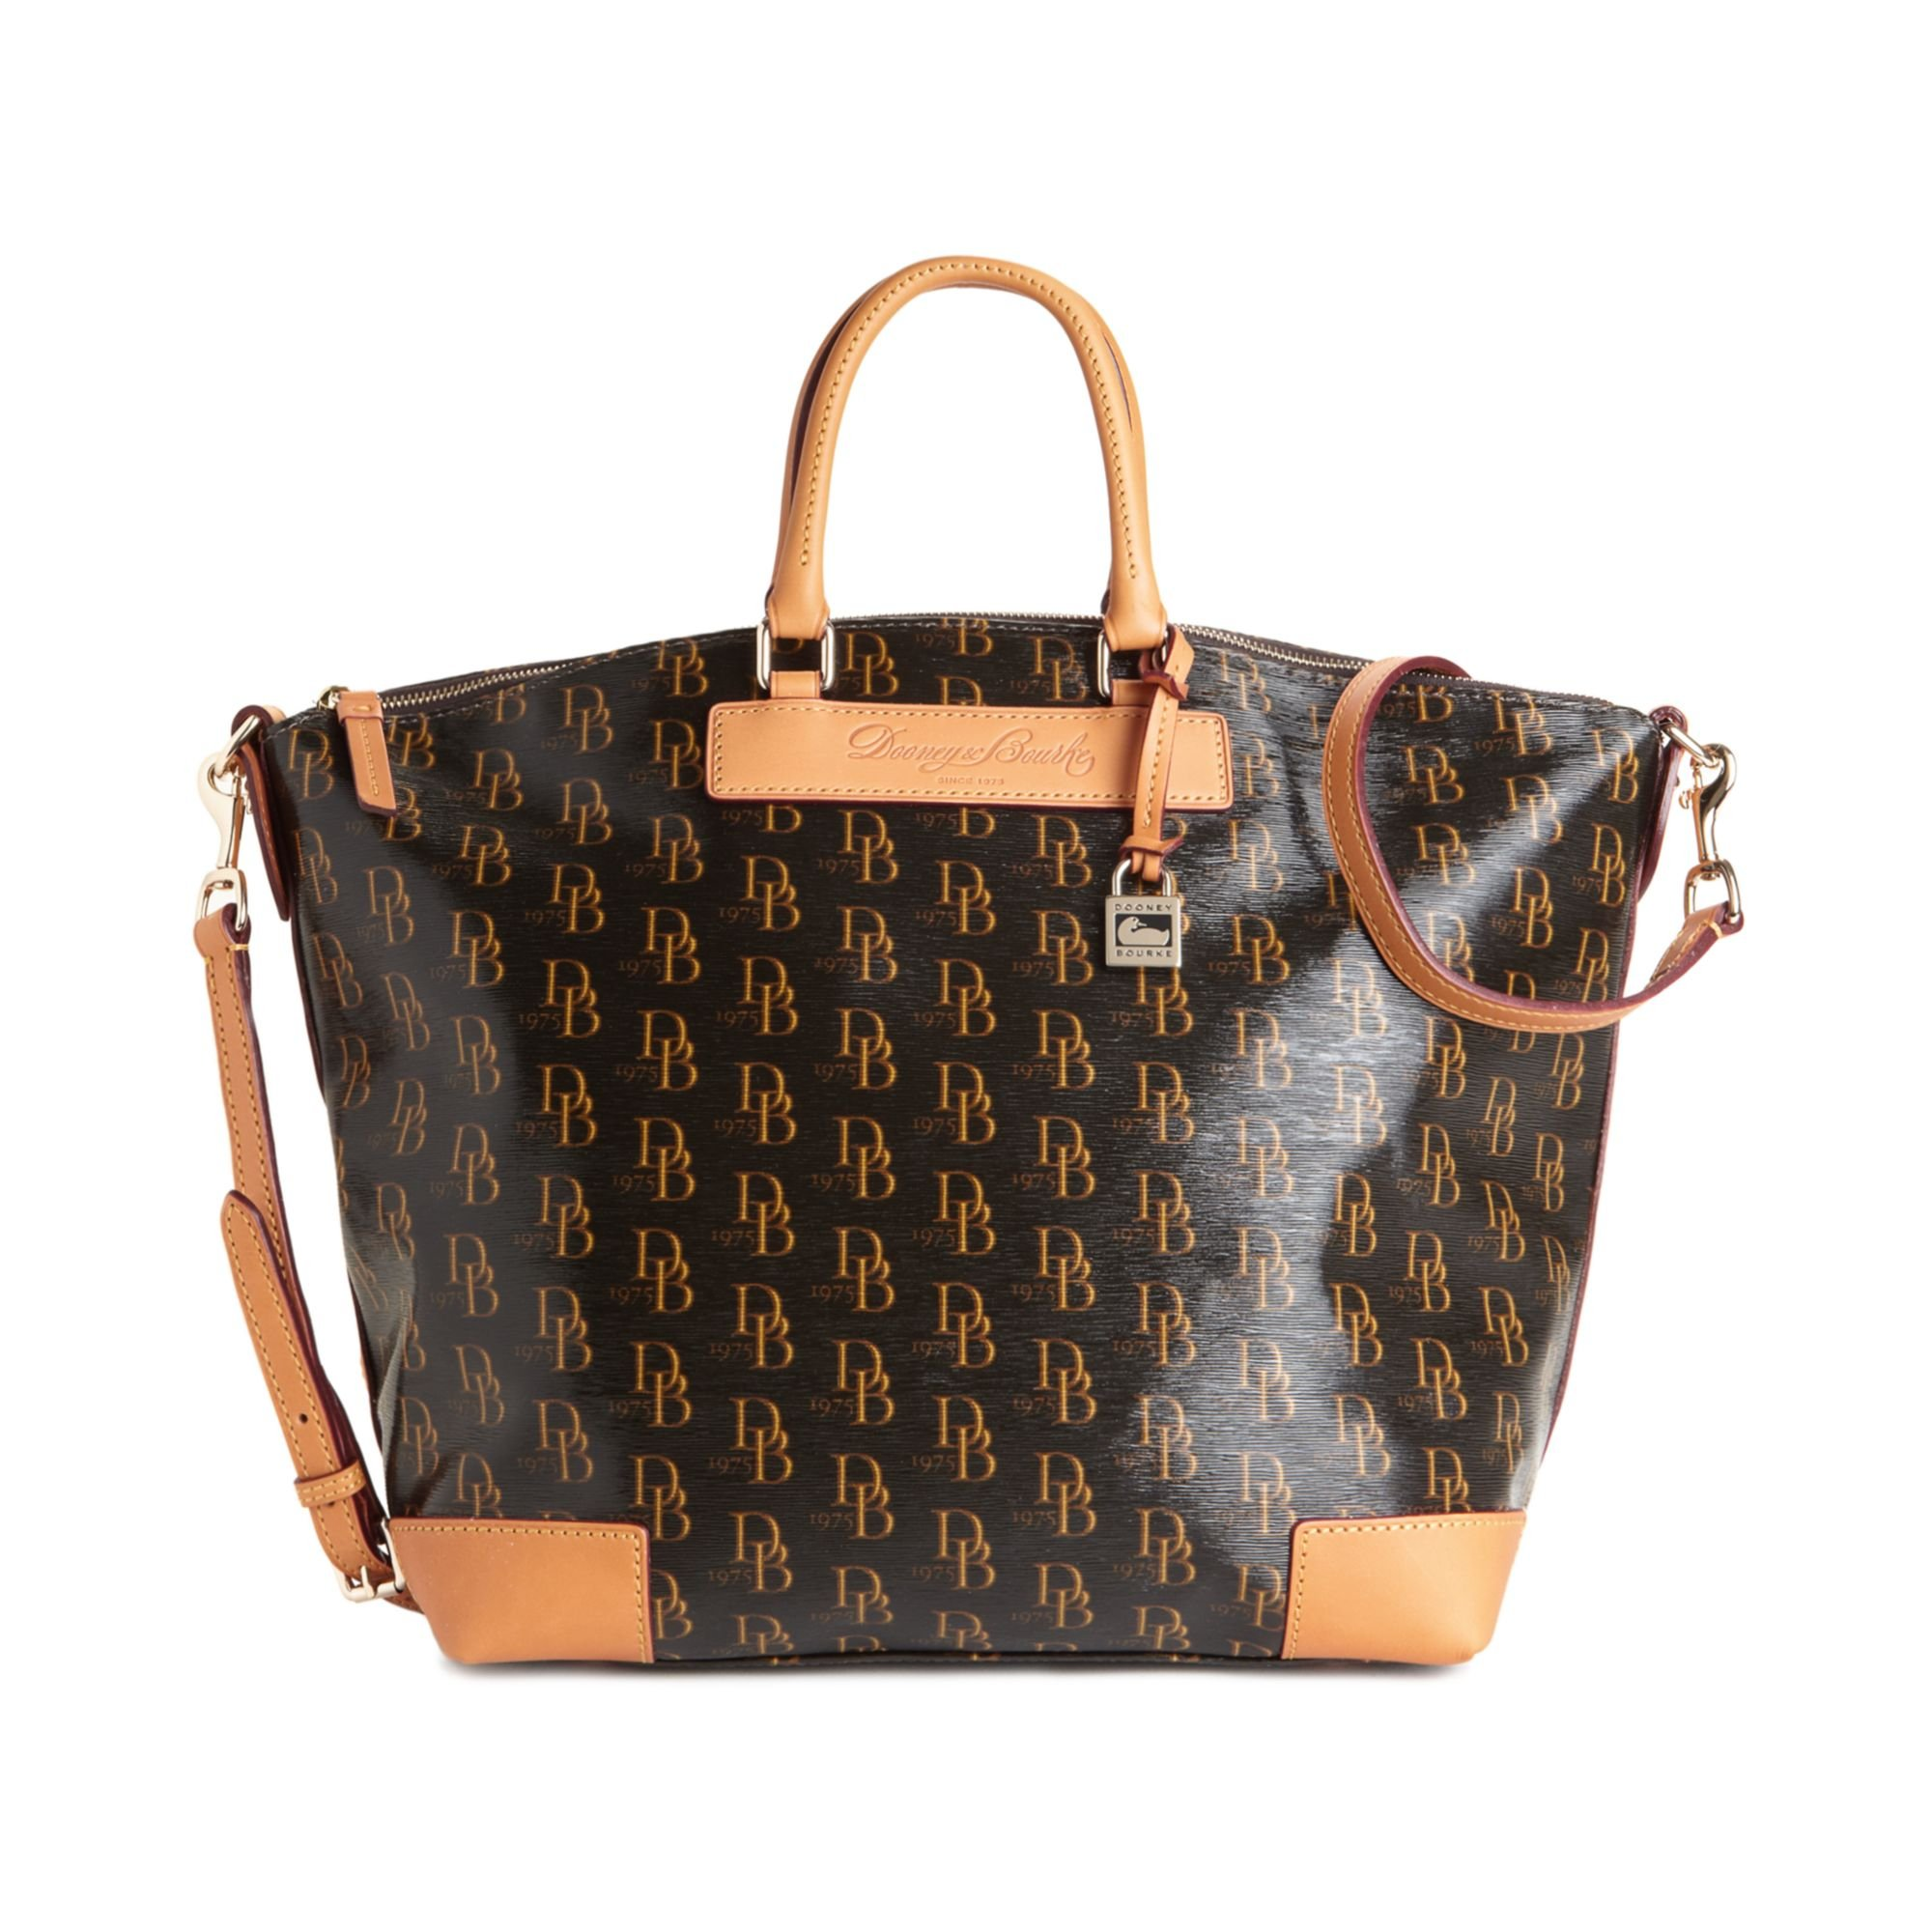 Dooney And Bourke Purses S Best Purse Image Ccdbb